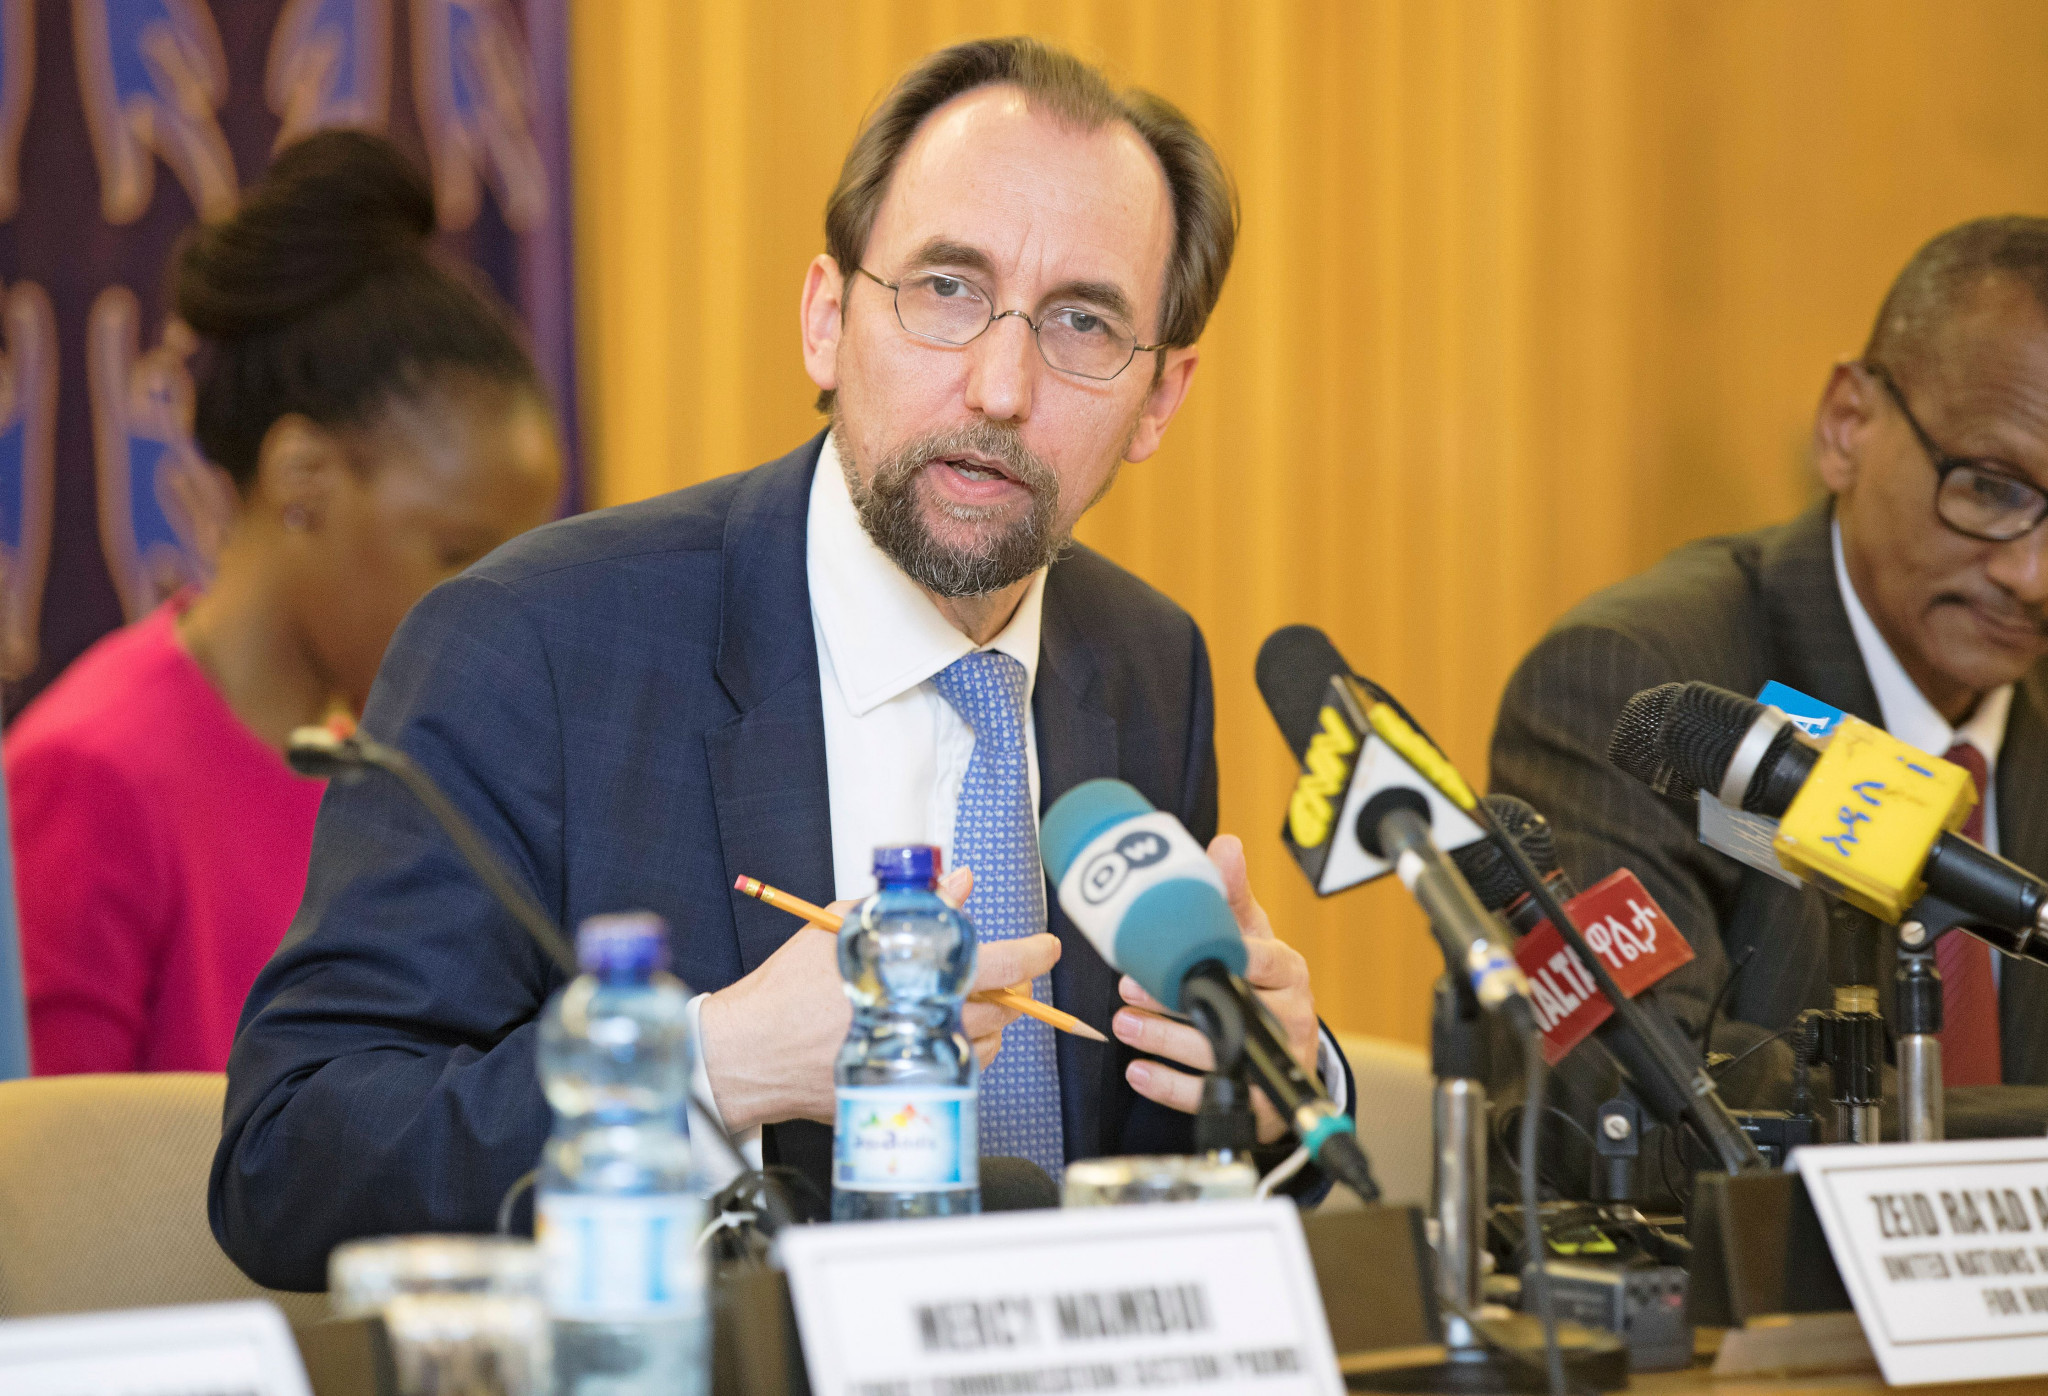 Former United Nations High Commissioner for Human Rights Prince Zeid Ra'ad Al Hussein is set to chair the new Committee proposed by the International Olympic Committee ©Getty Images